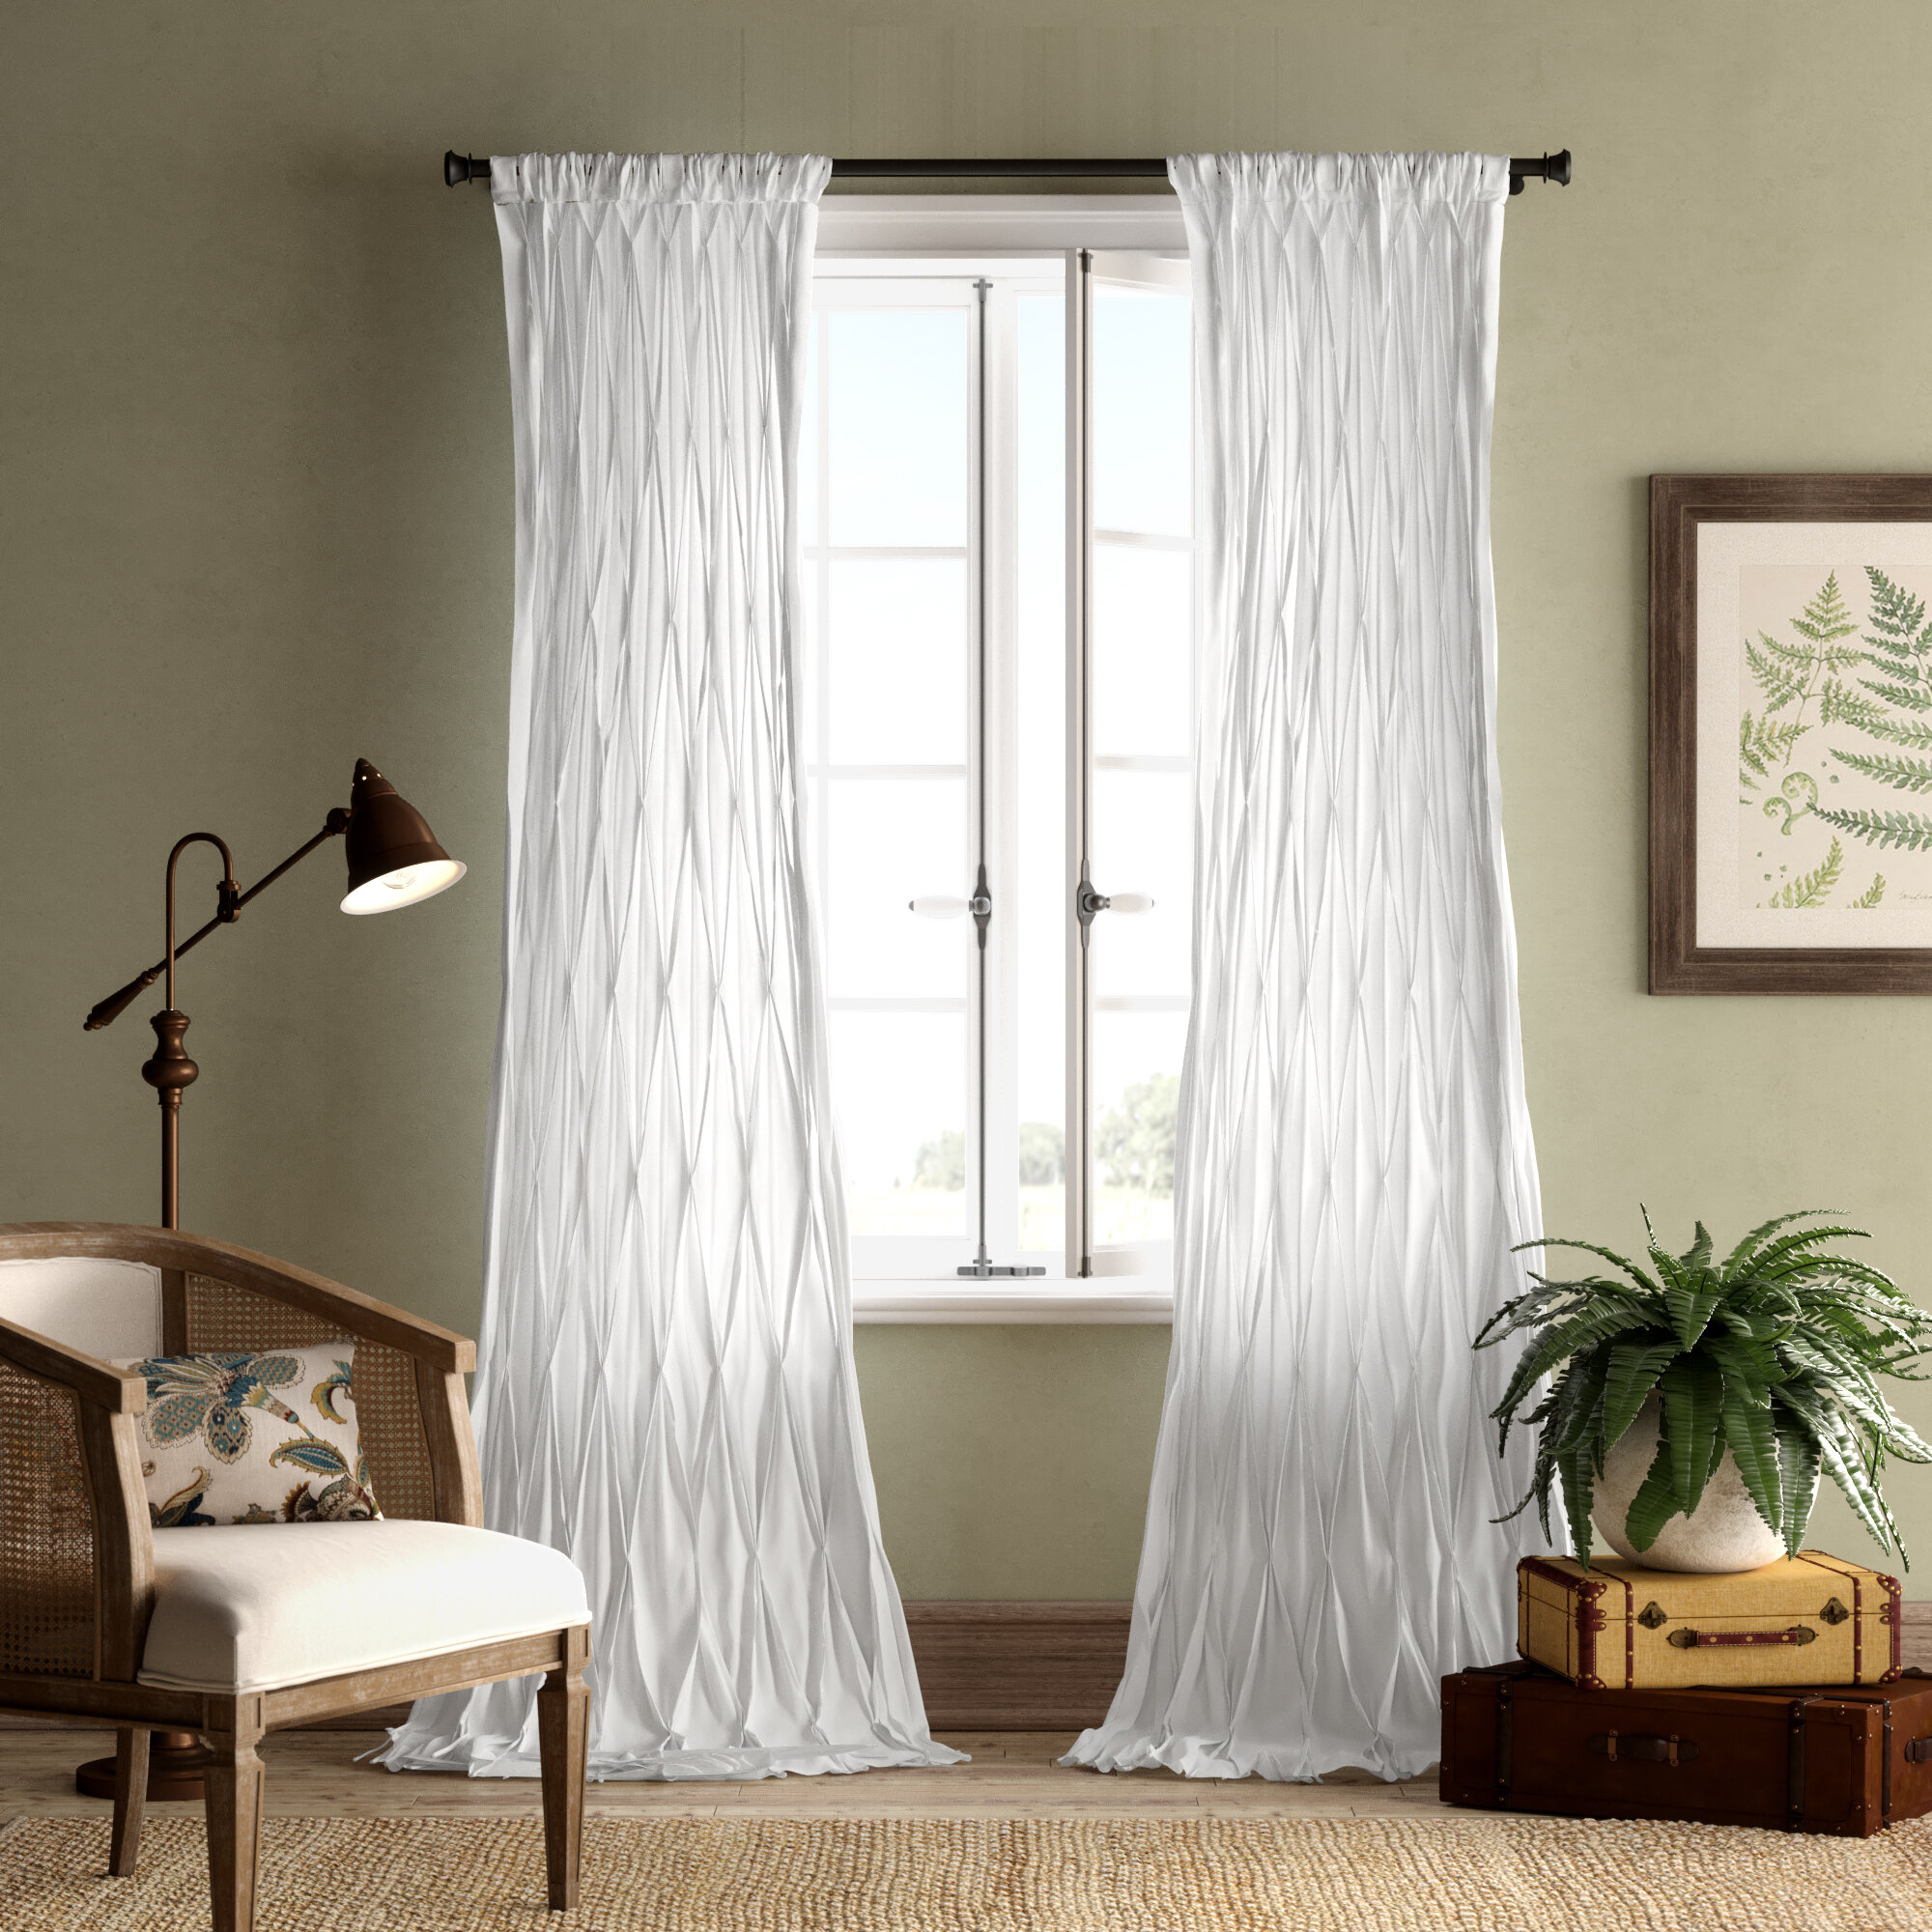 Casimiro Cotton Voile Solid Sheer Pinch Pleat Single Curtain Panel With Solid Cotton True Blackout Curtain Panels (View 23 of 30)